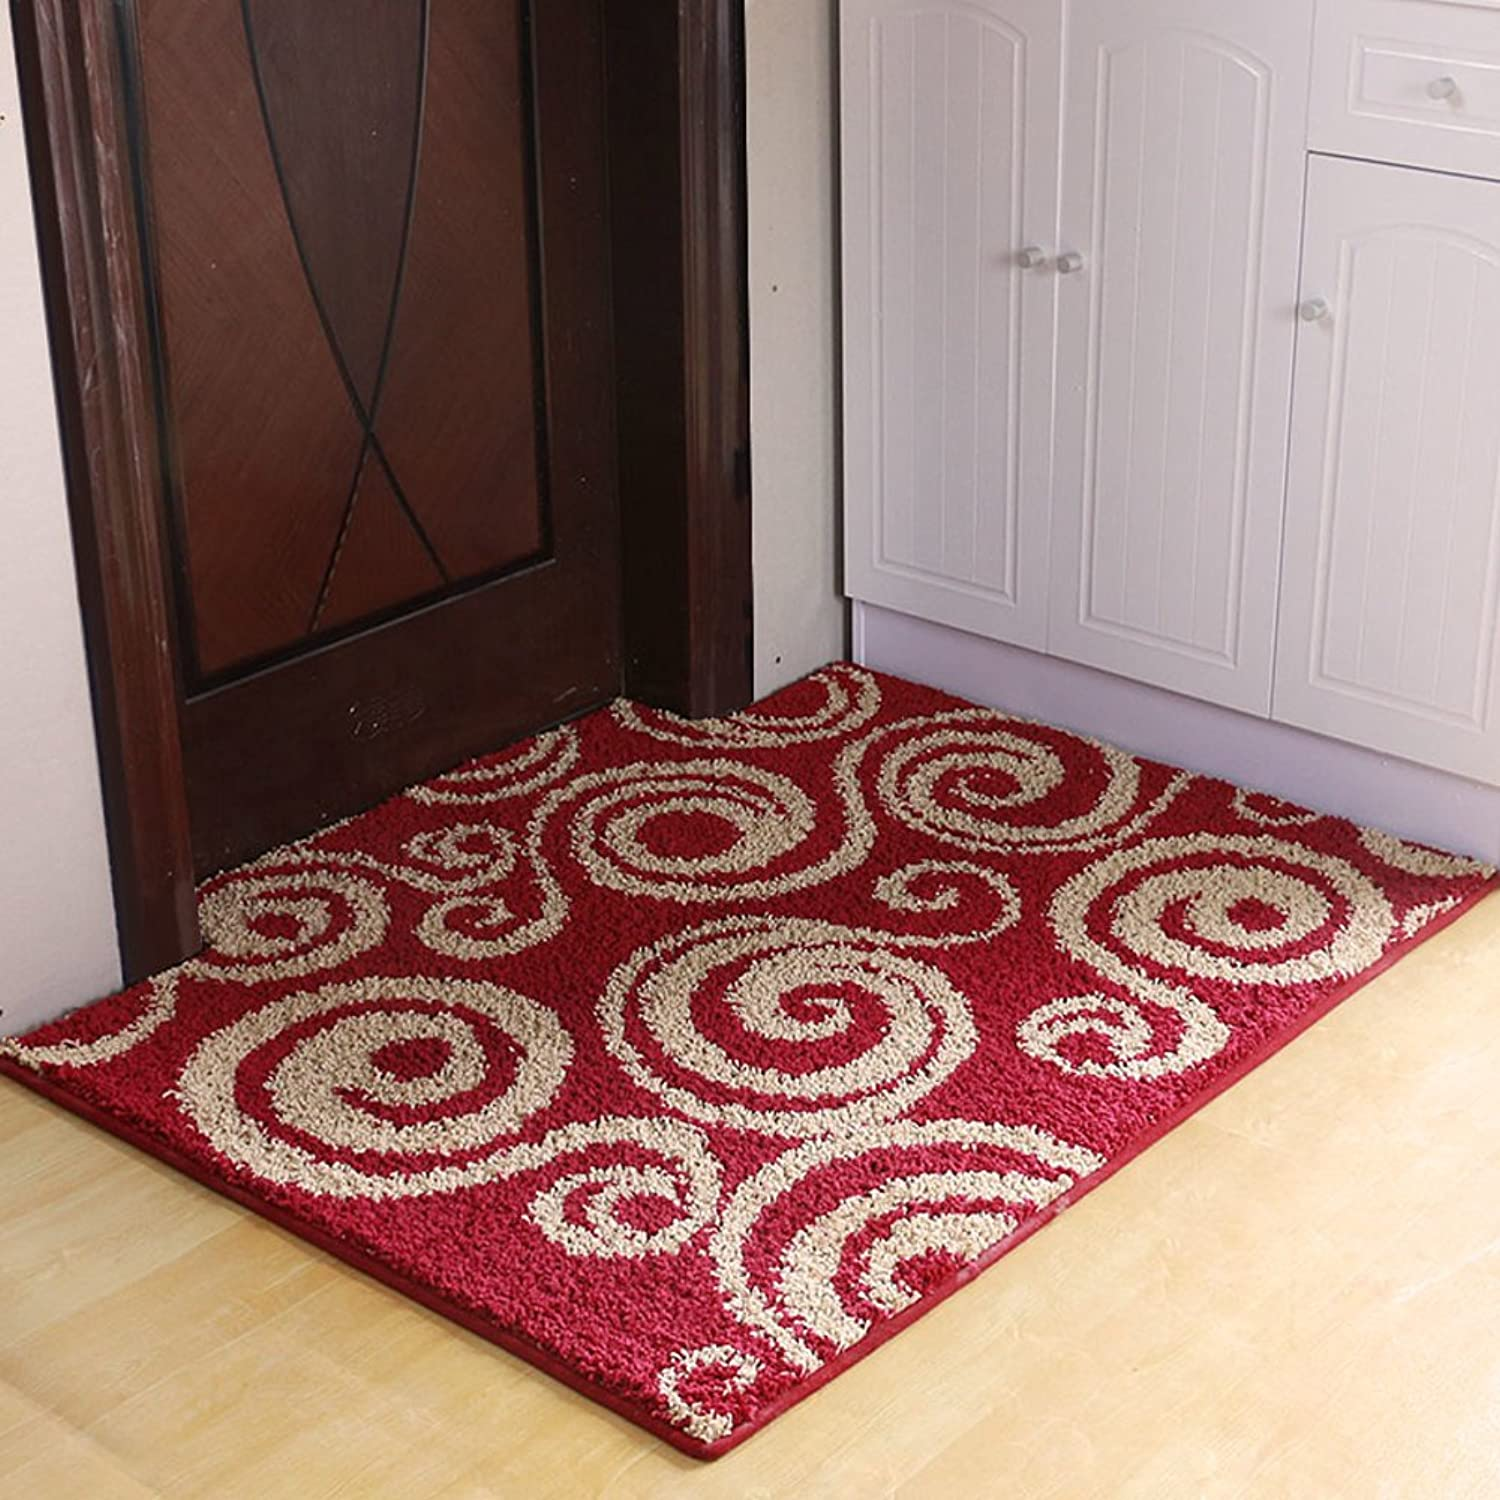 Door mat,Gate pad,Rug,Carpet,Doormat,Indoor mat,Doormat,Foot pad,Doormats,[foyer carpet]-D 60x90cm(24x35inch)